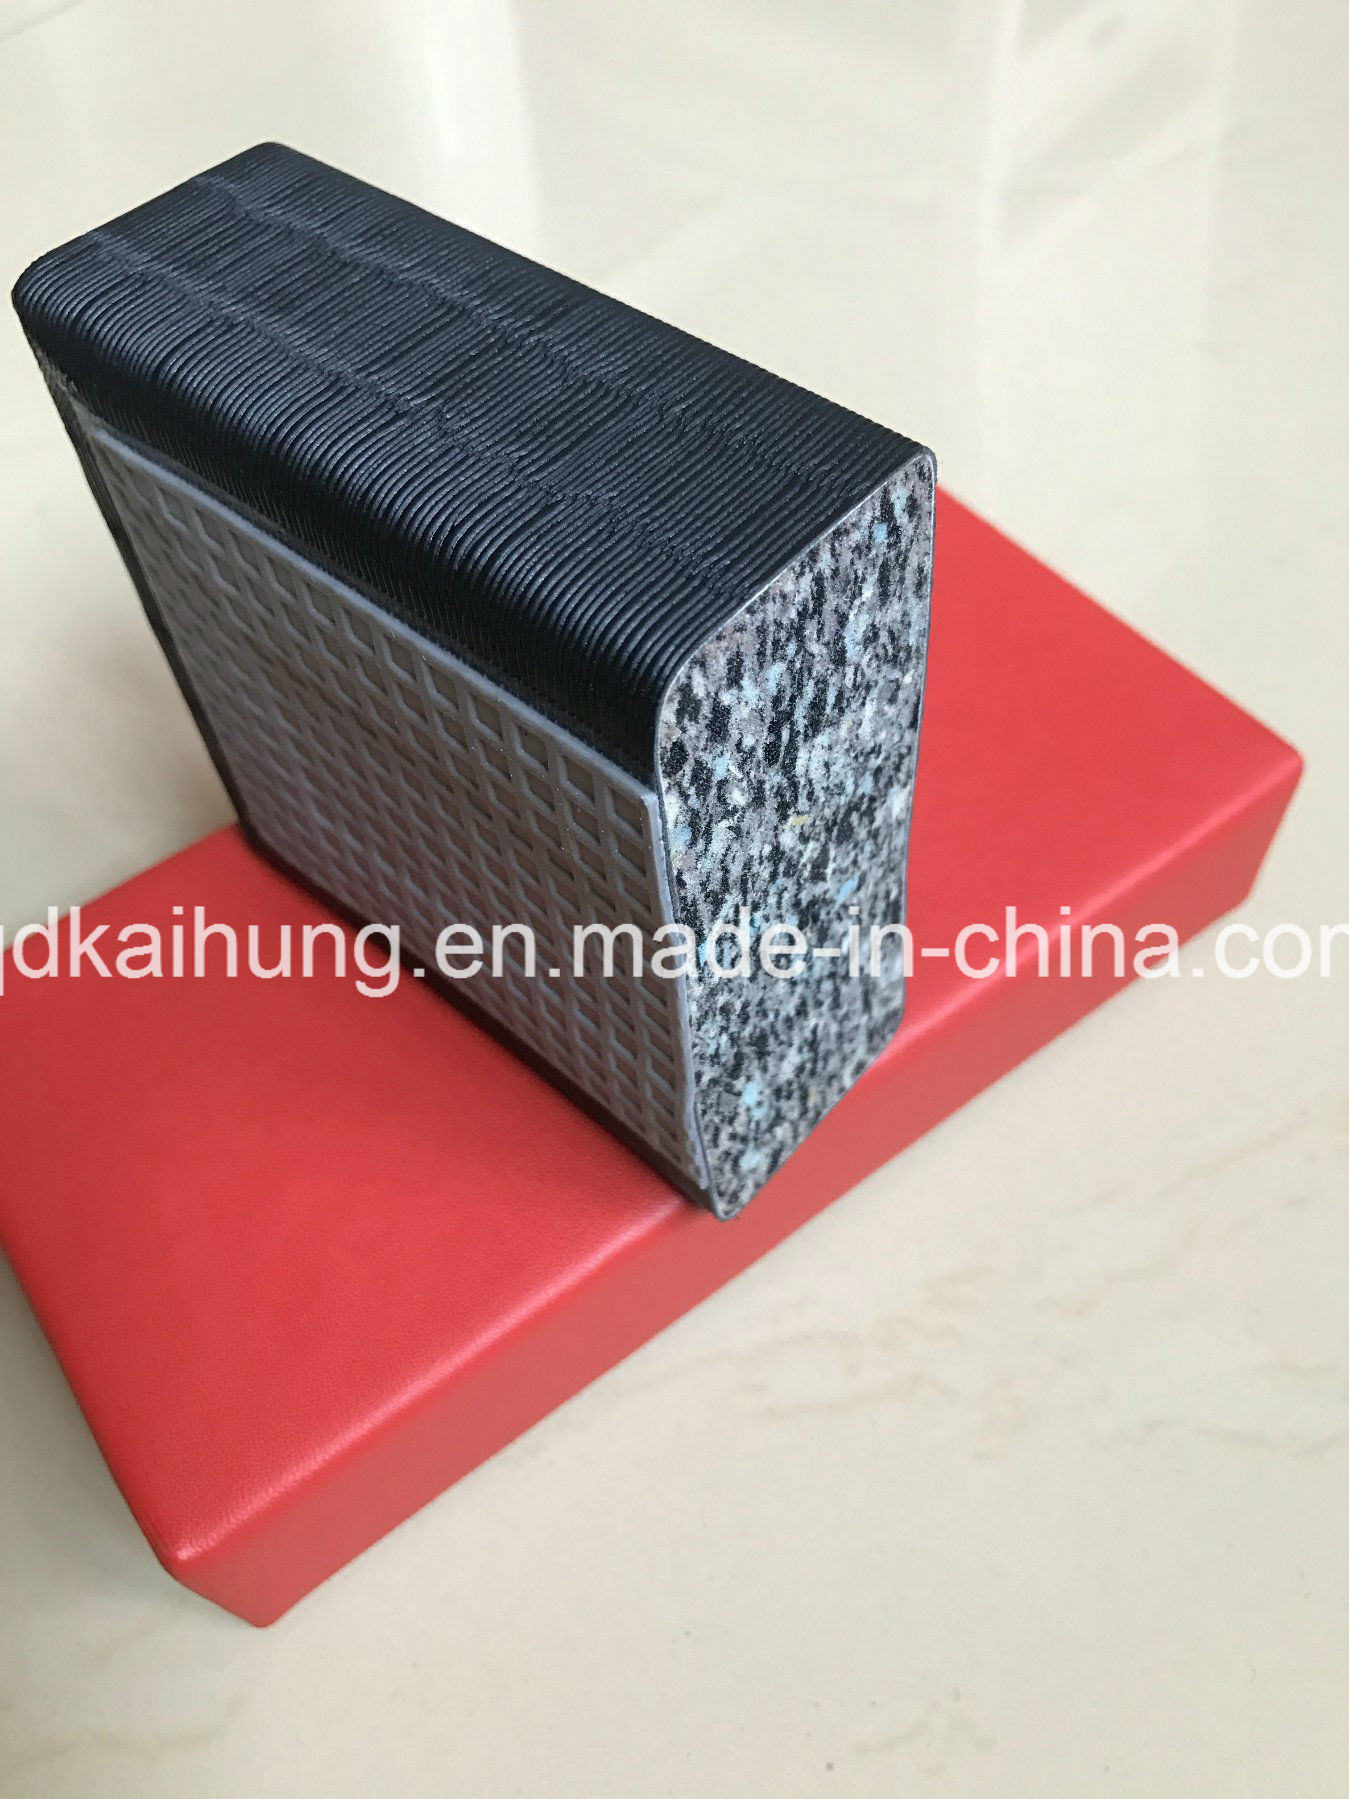 Interlock Kendo Mat China Grappling Mat Grappling Mat Manufacturers Suppliers Price Made In China